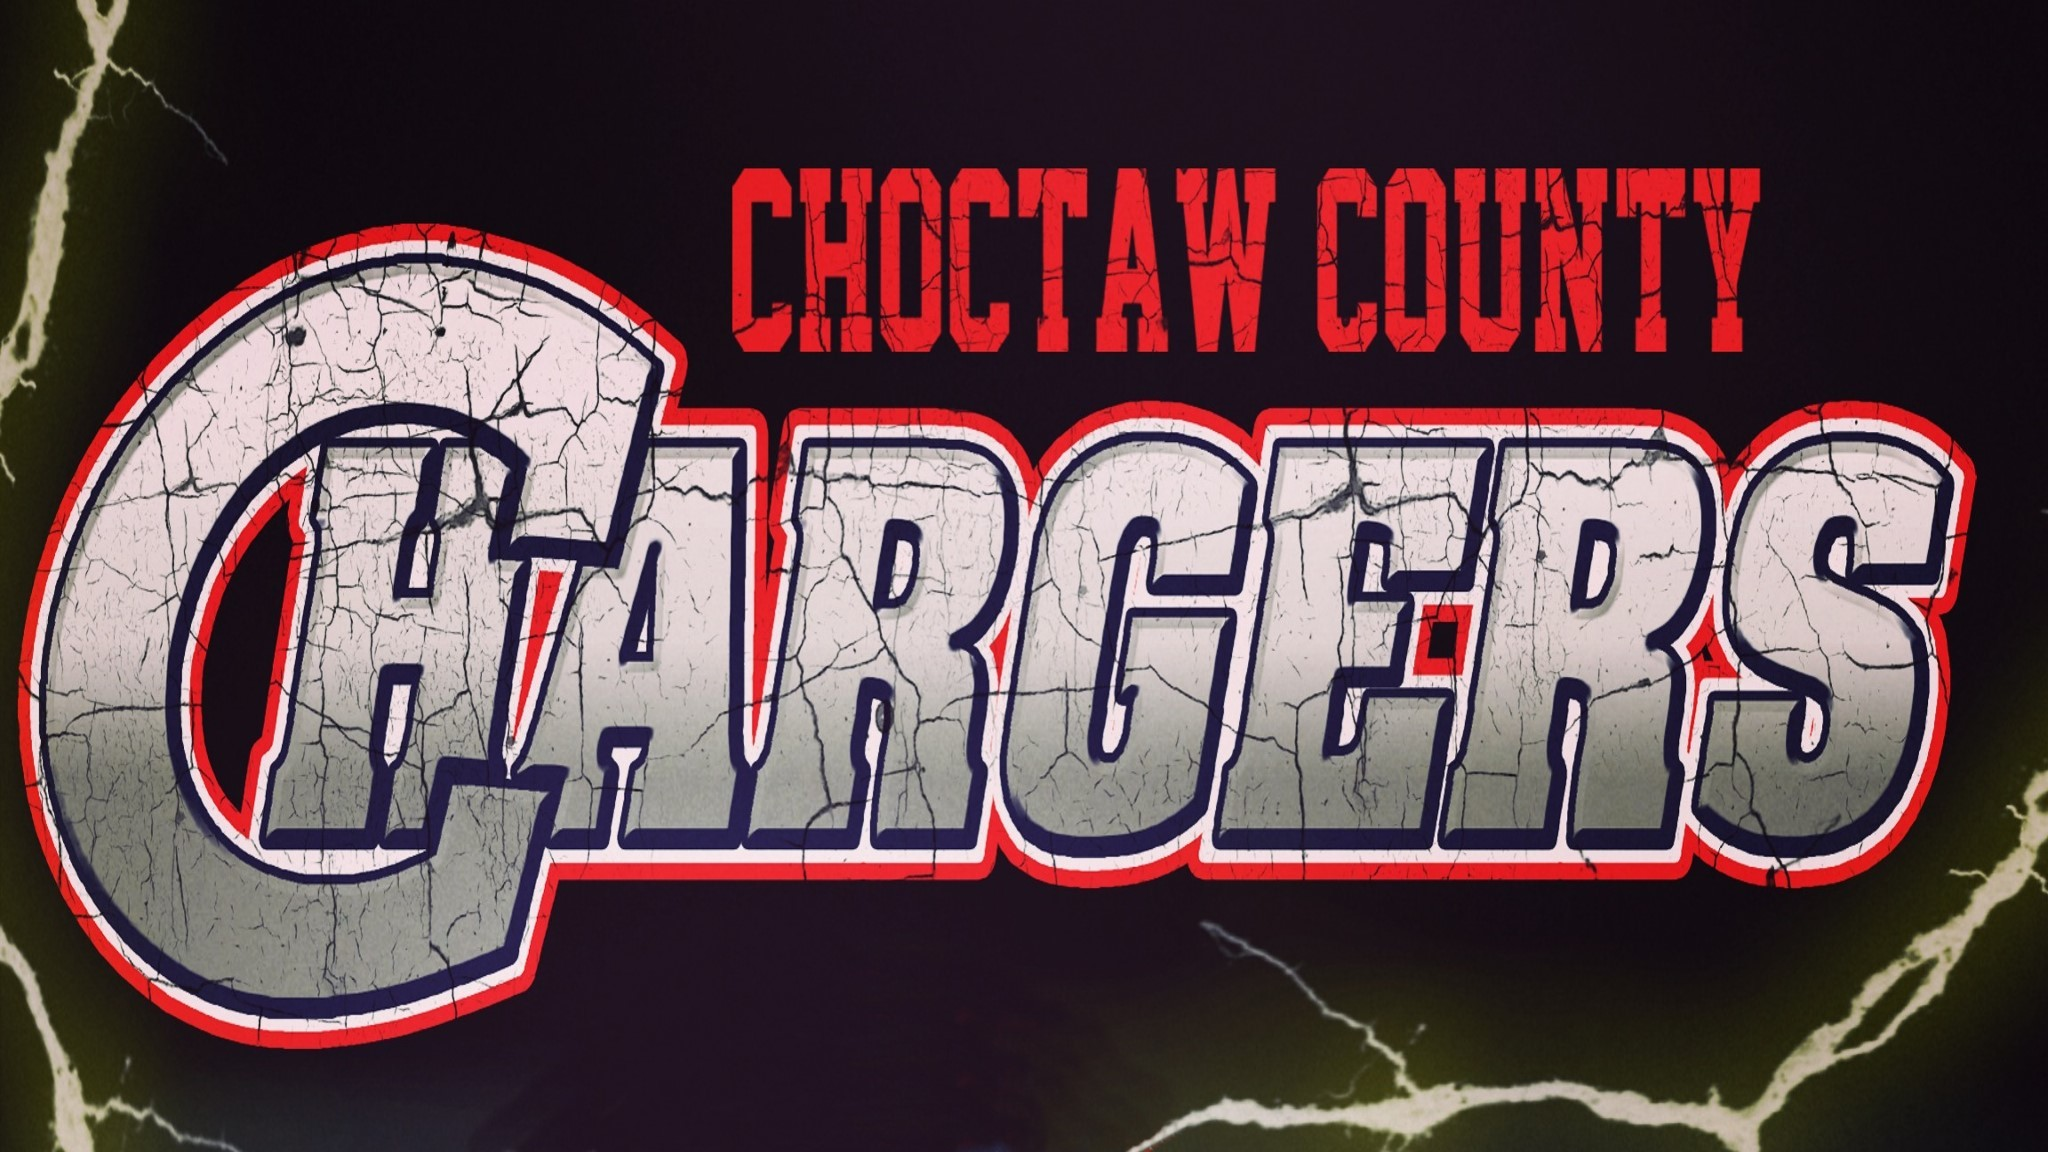 Choctaw County Chargers